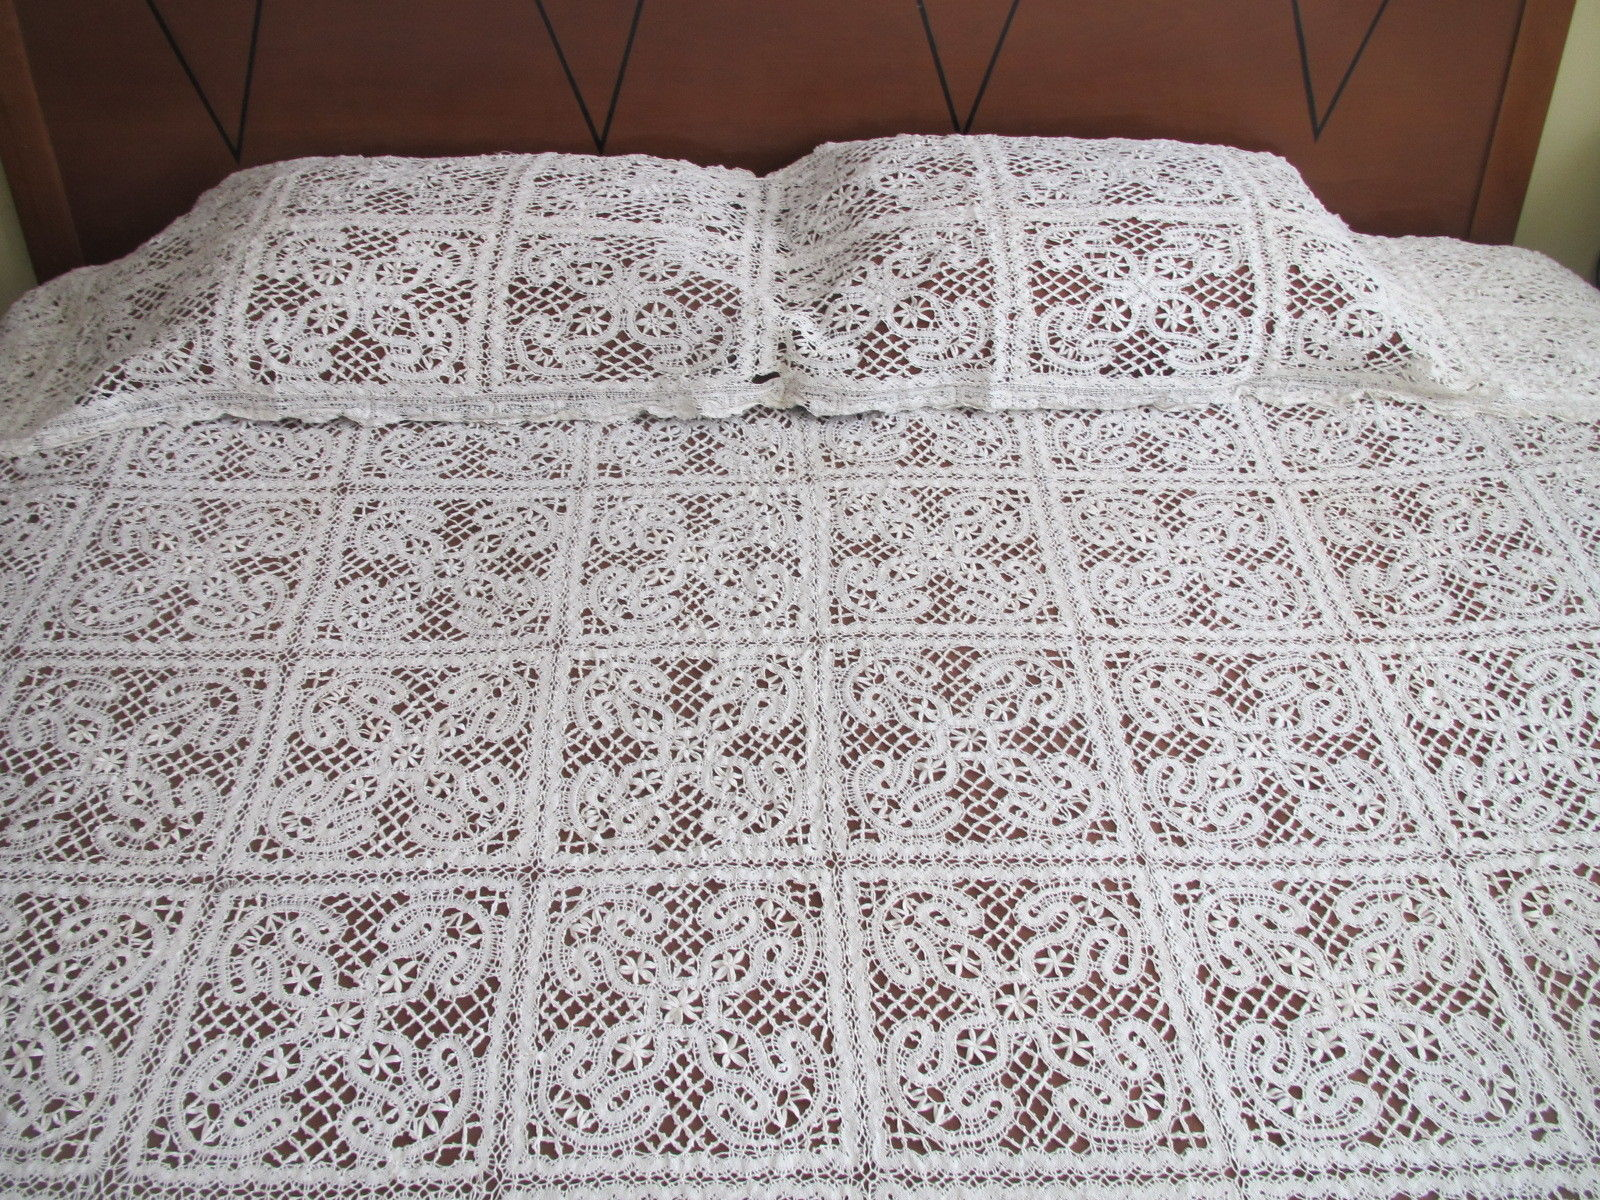 Antique Handmade Lace 2 pc Bedspread Set Bed Cover Coverlet Pillow Overlay Sham  (L&T-316)